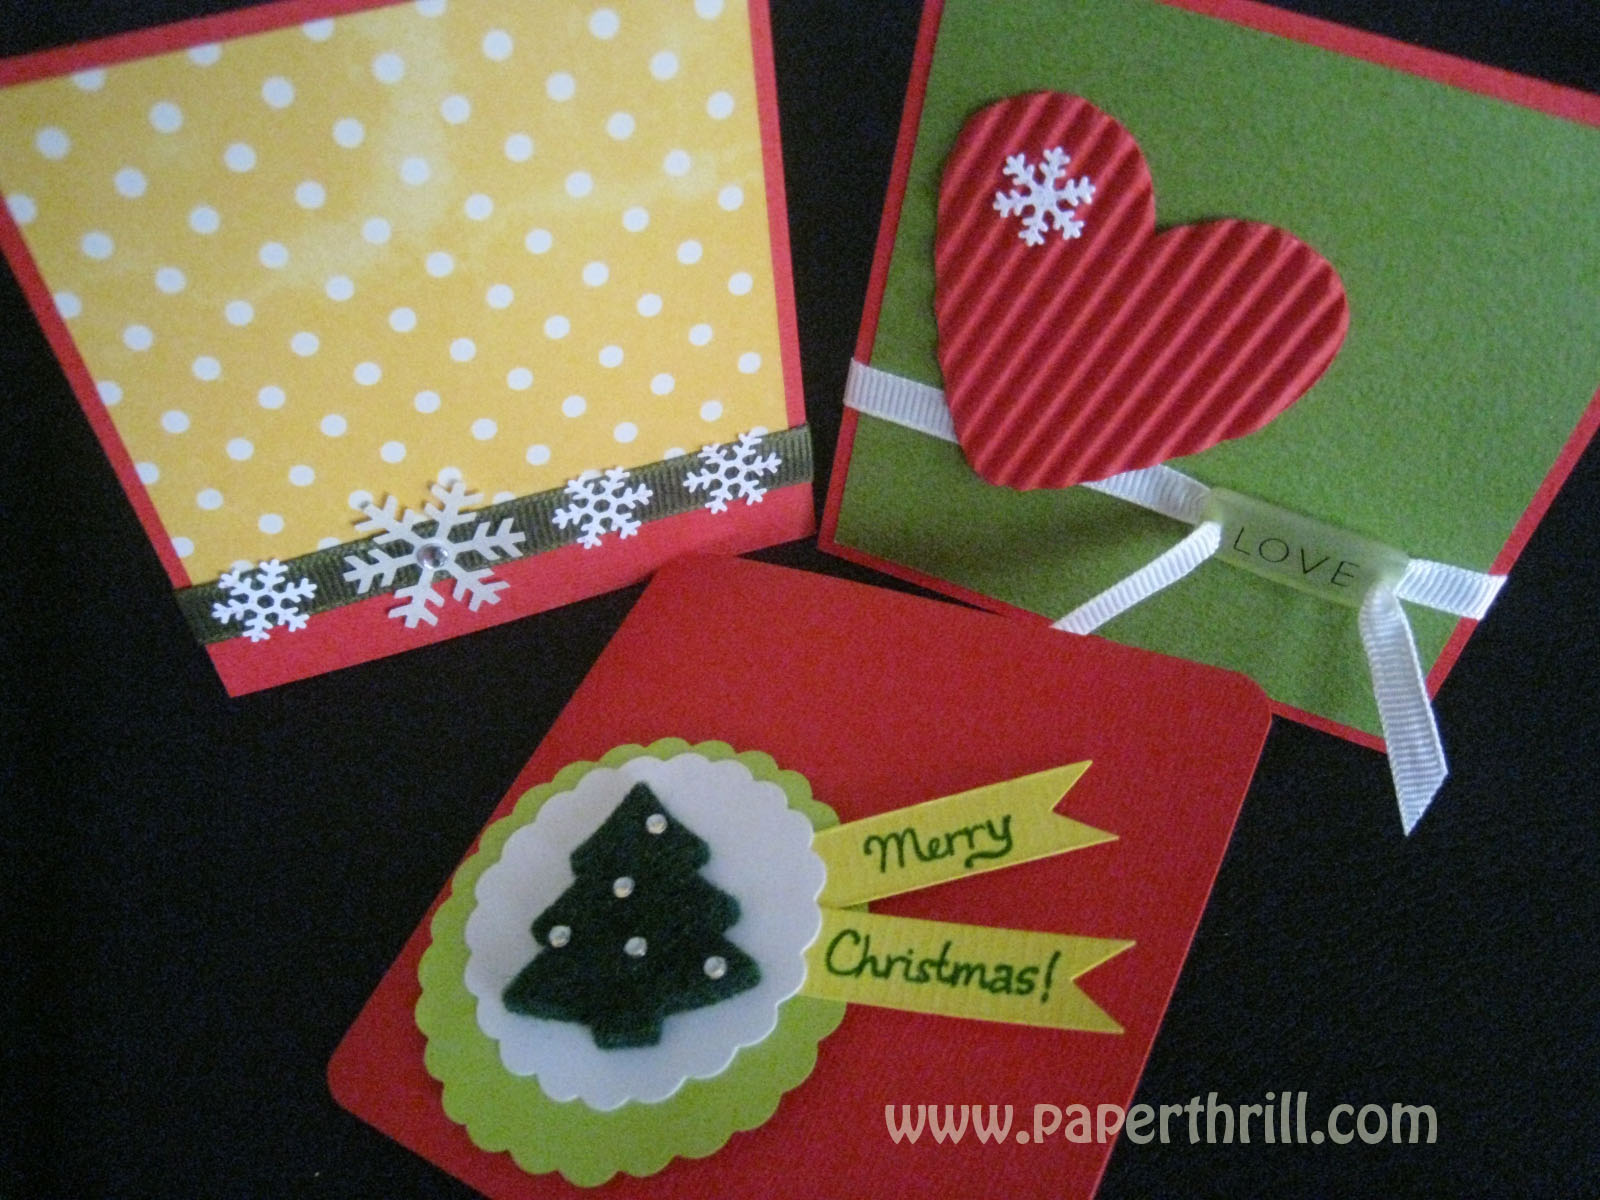 Malaysia wedding invitations, greeting cards and bespoke cards ...